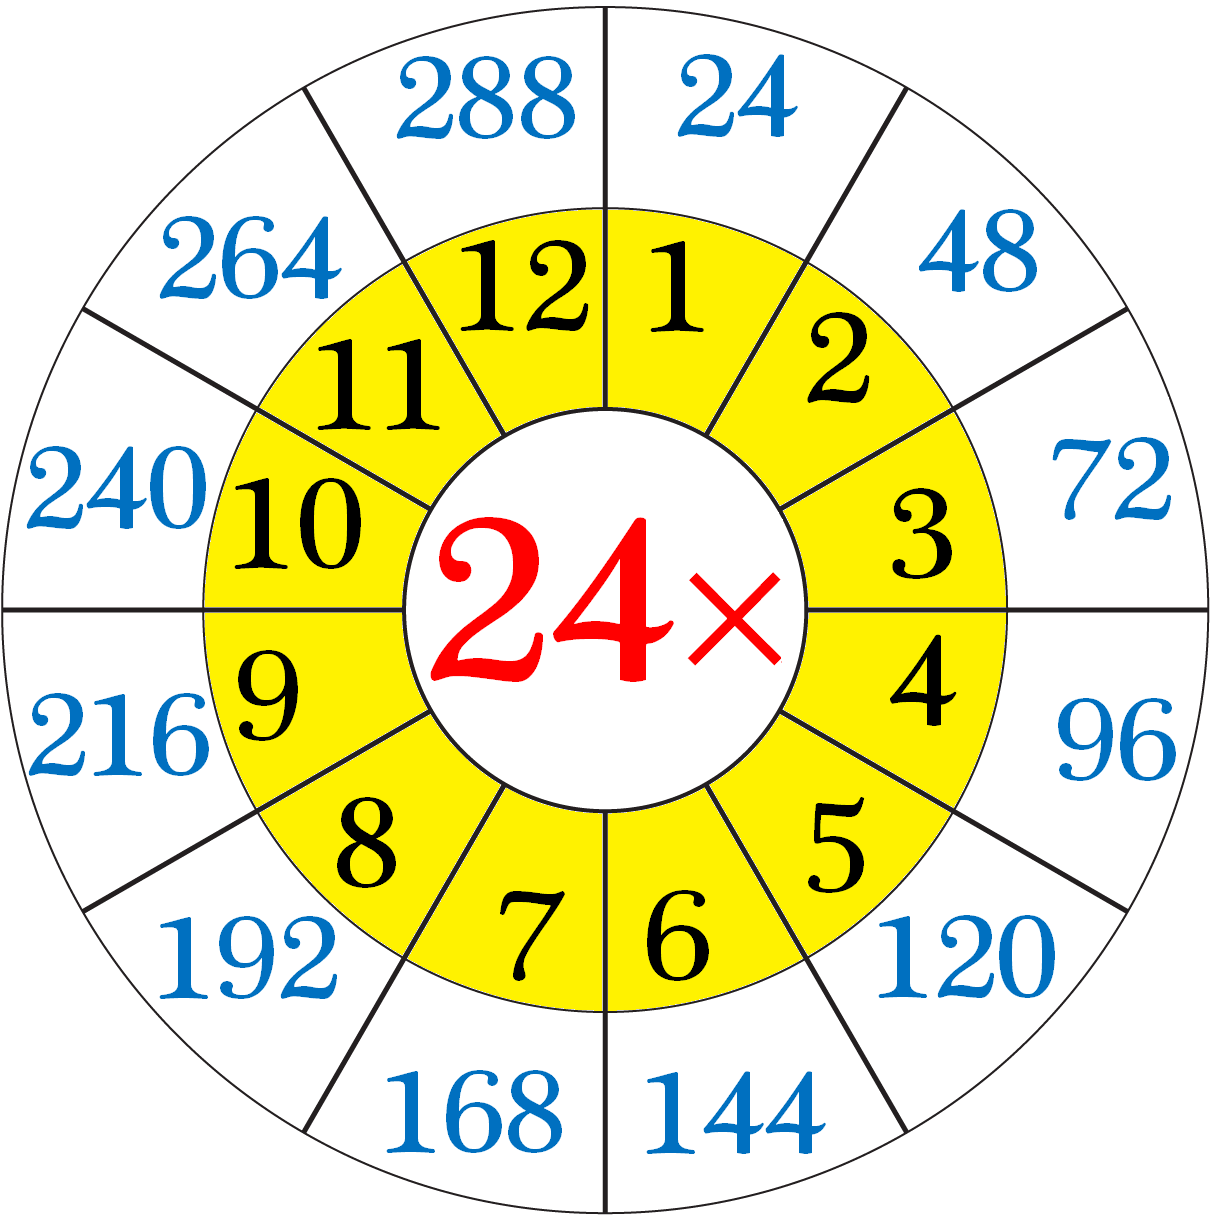 Multiplication Table of 24